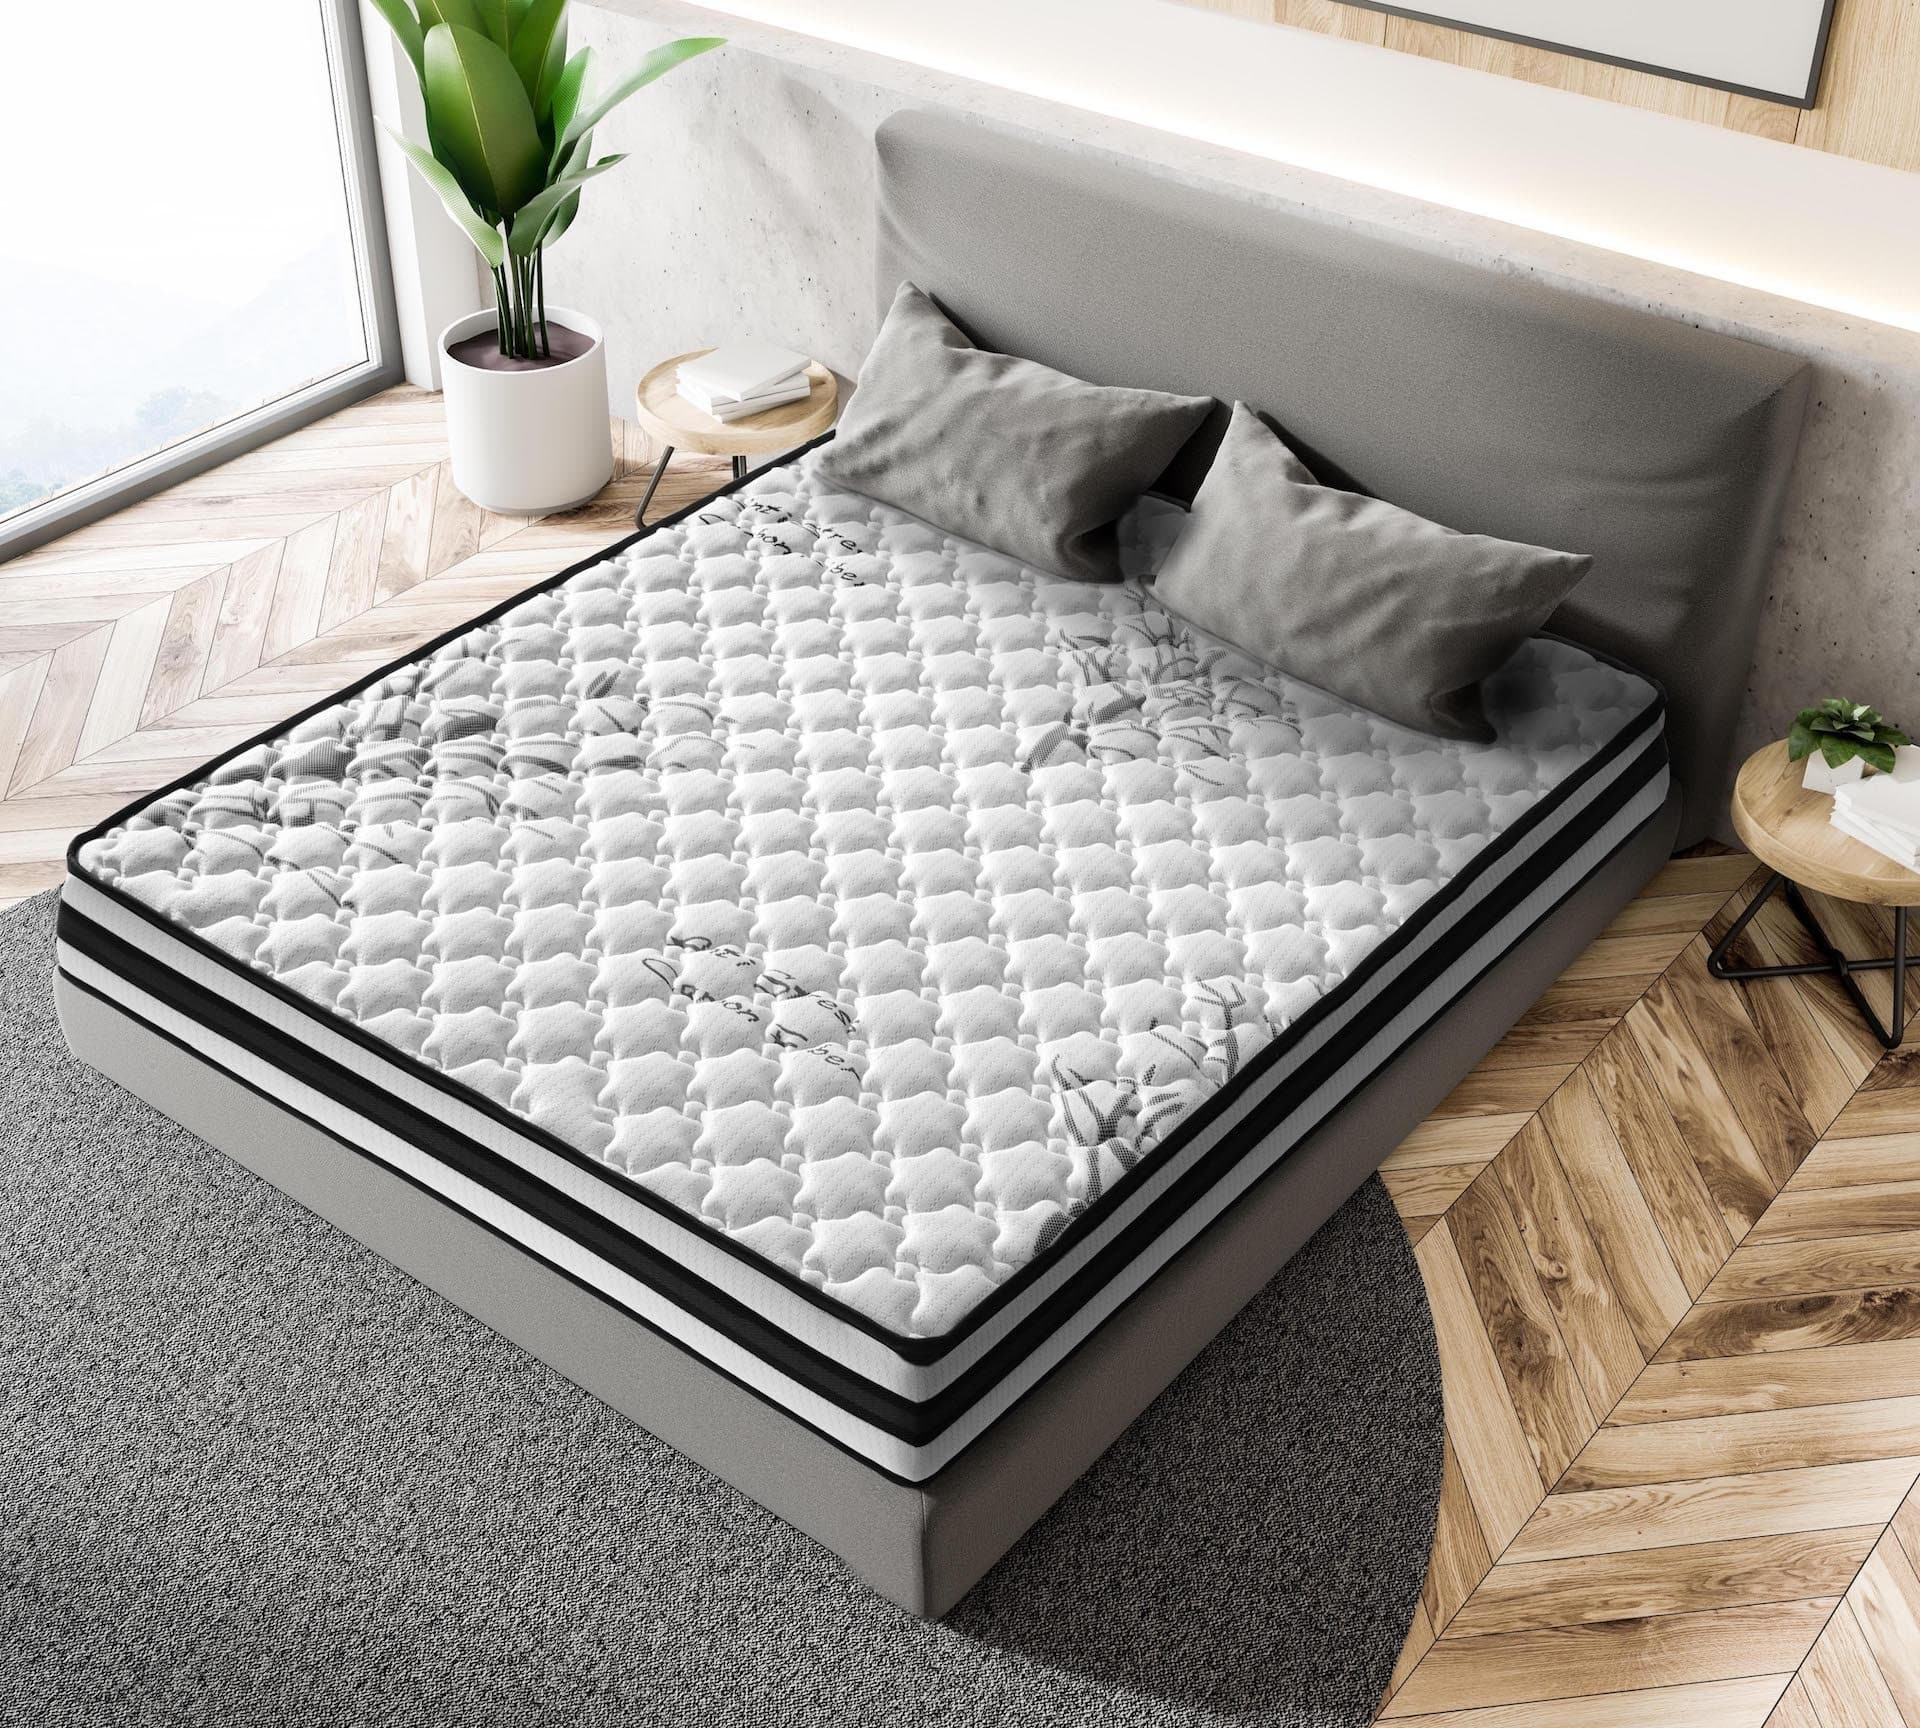 Anti Stress Carbono - BEZEN MATTRESS AND HEALTH